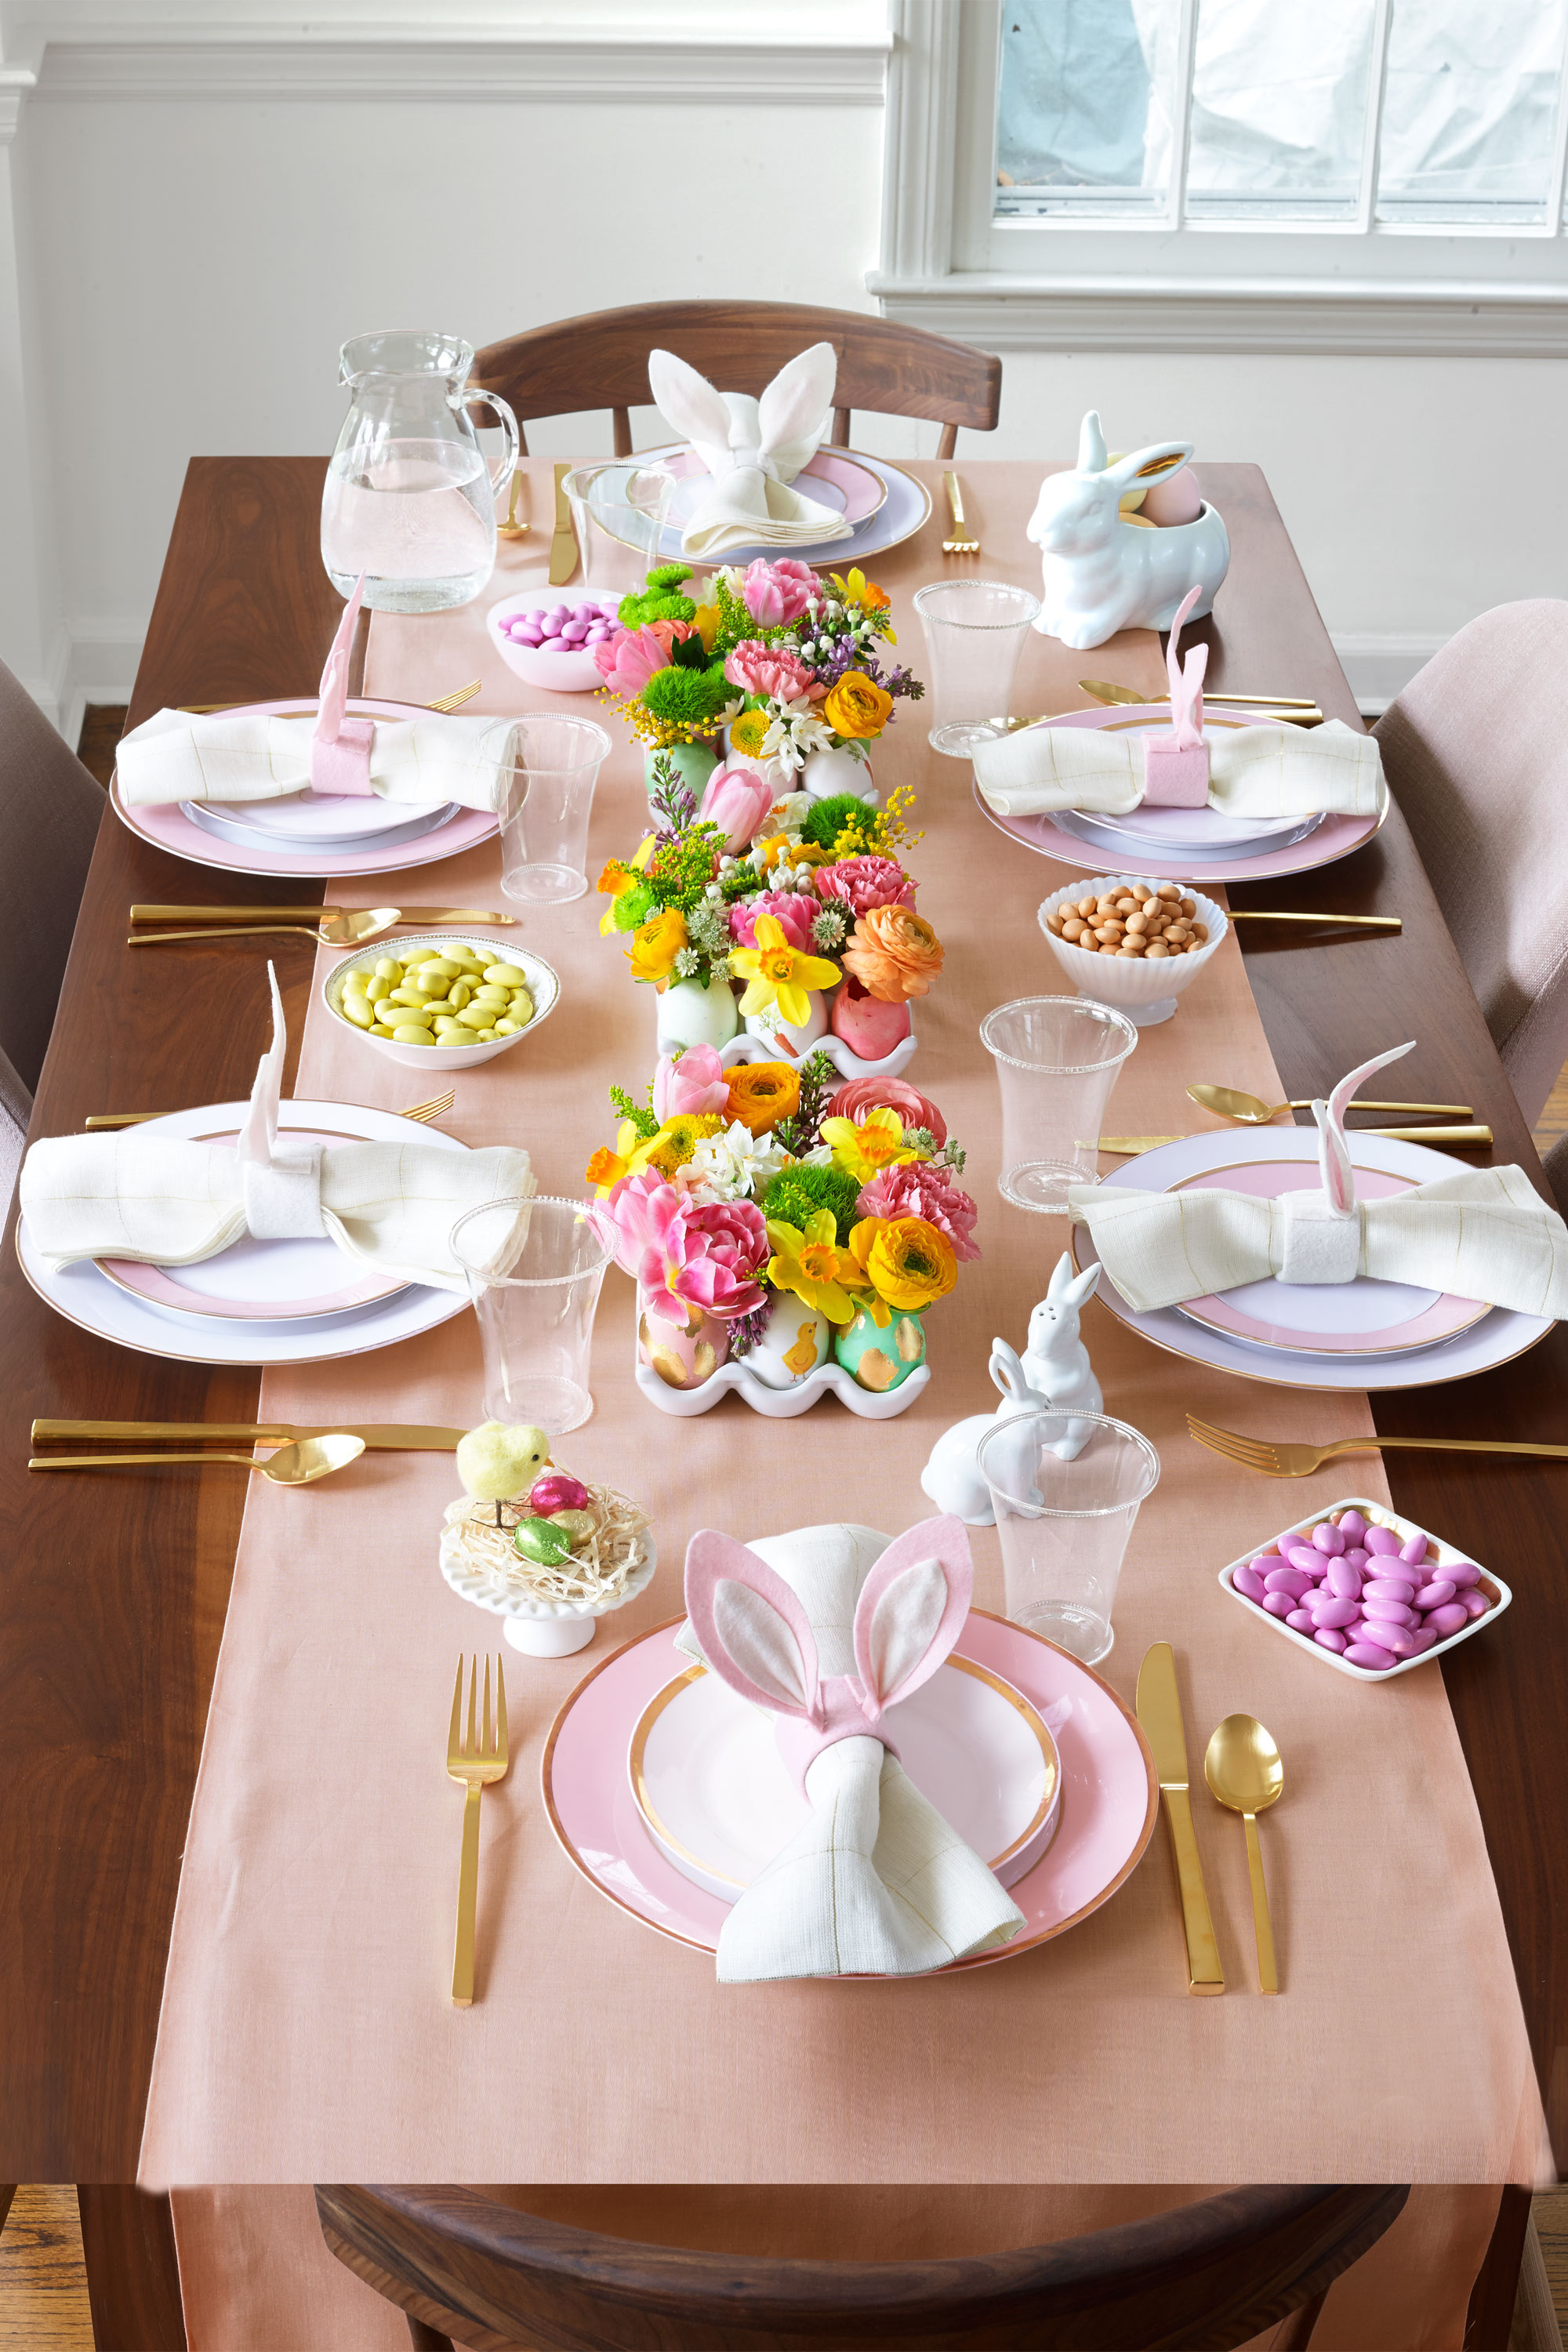 17 Easter Table Decorations - Table Decor Ideas for Easter ...